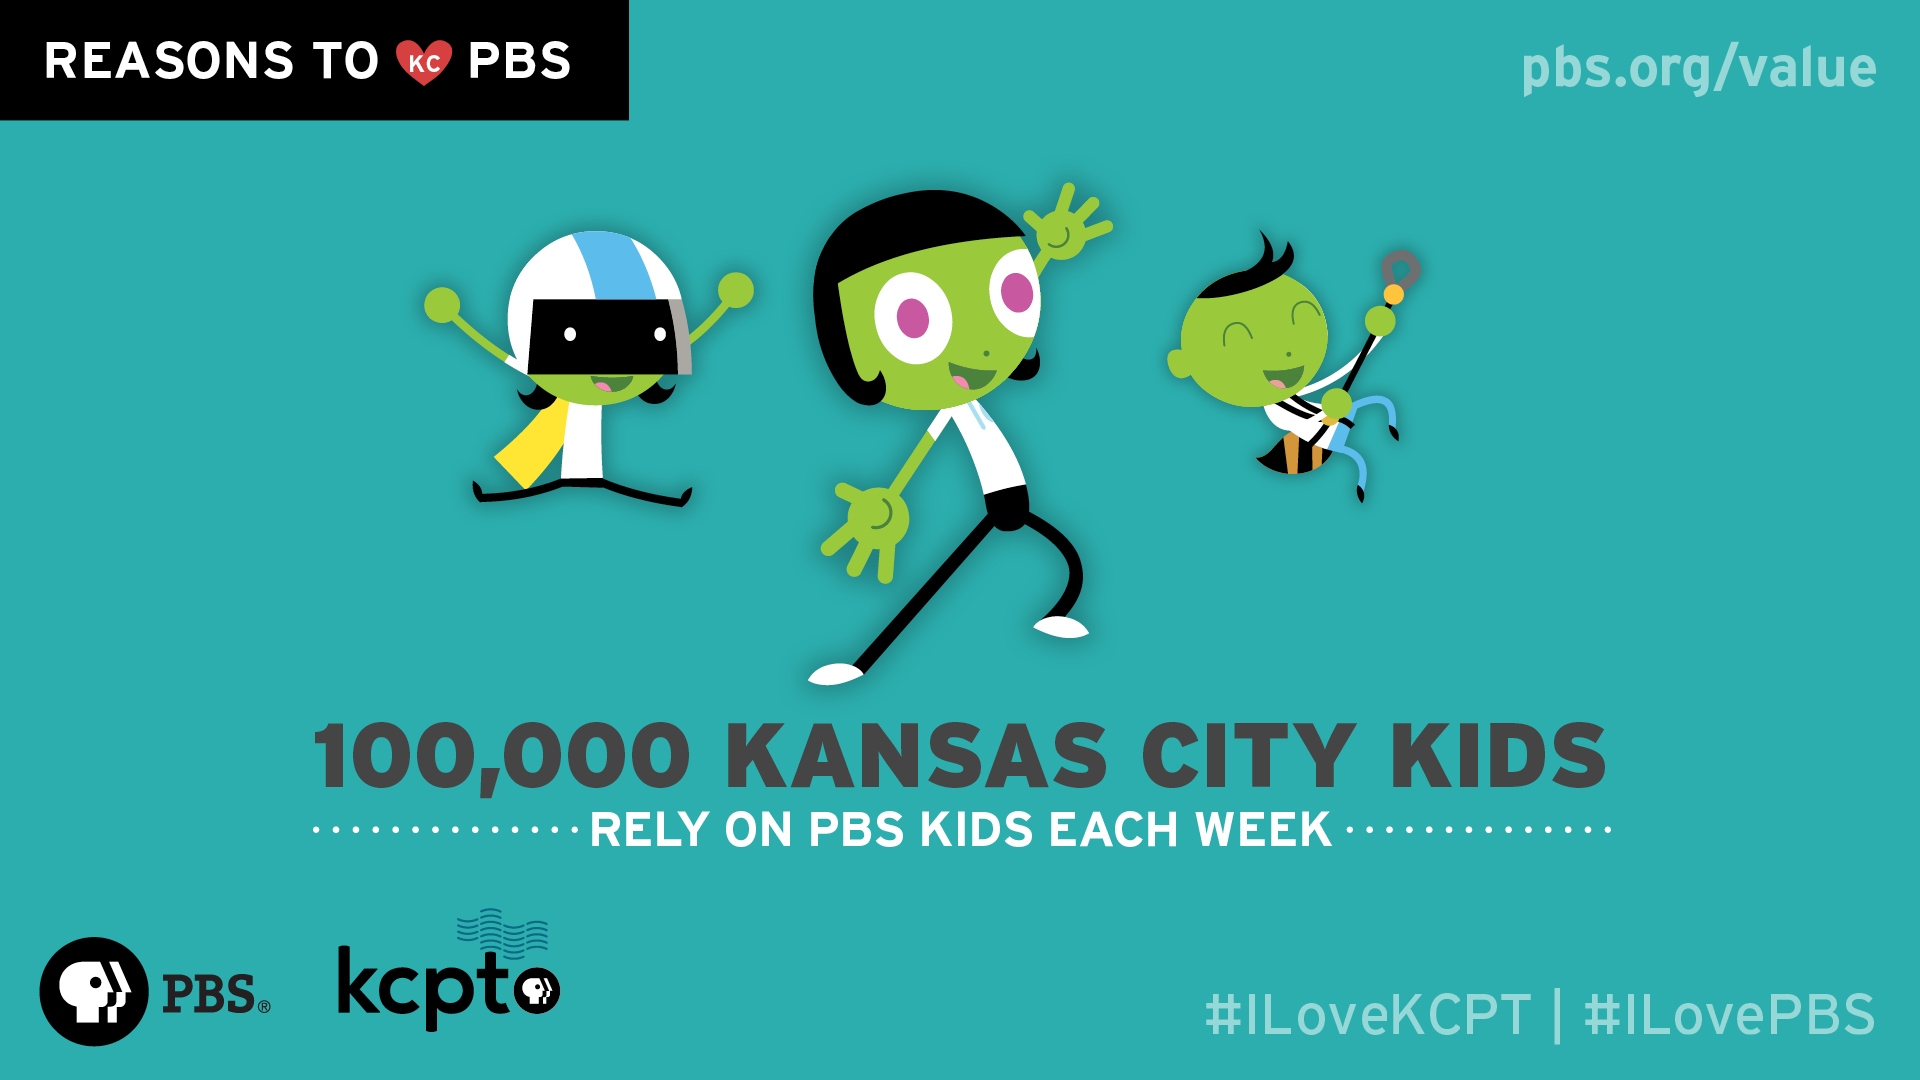 100,000 Kansas City kids rely on PBS KIDS each week.